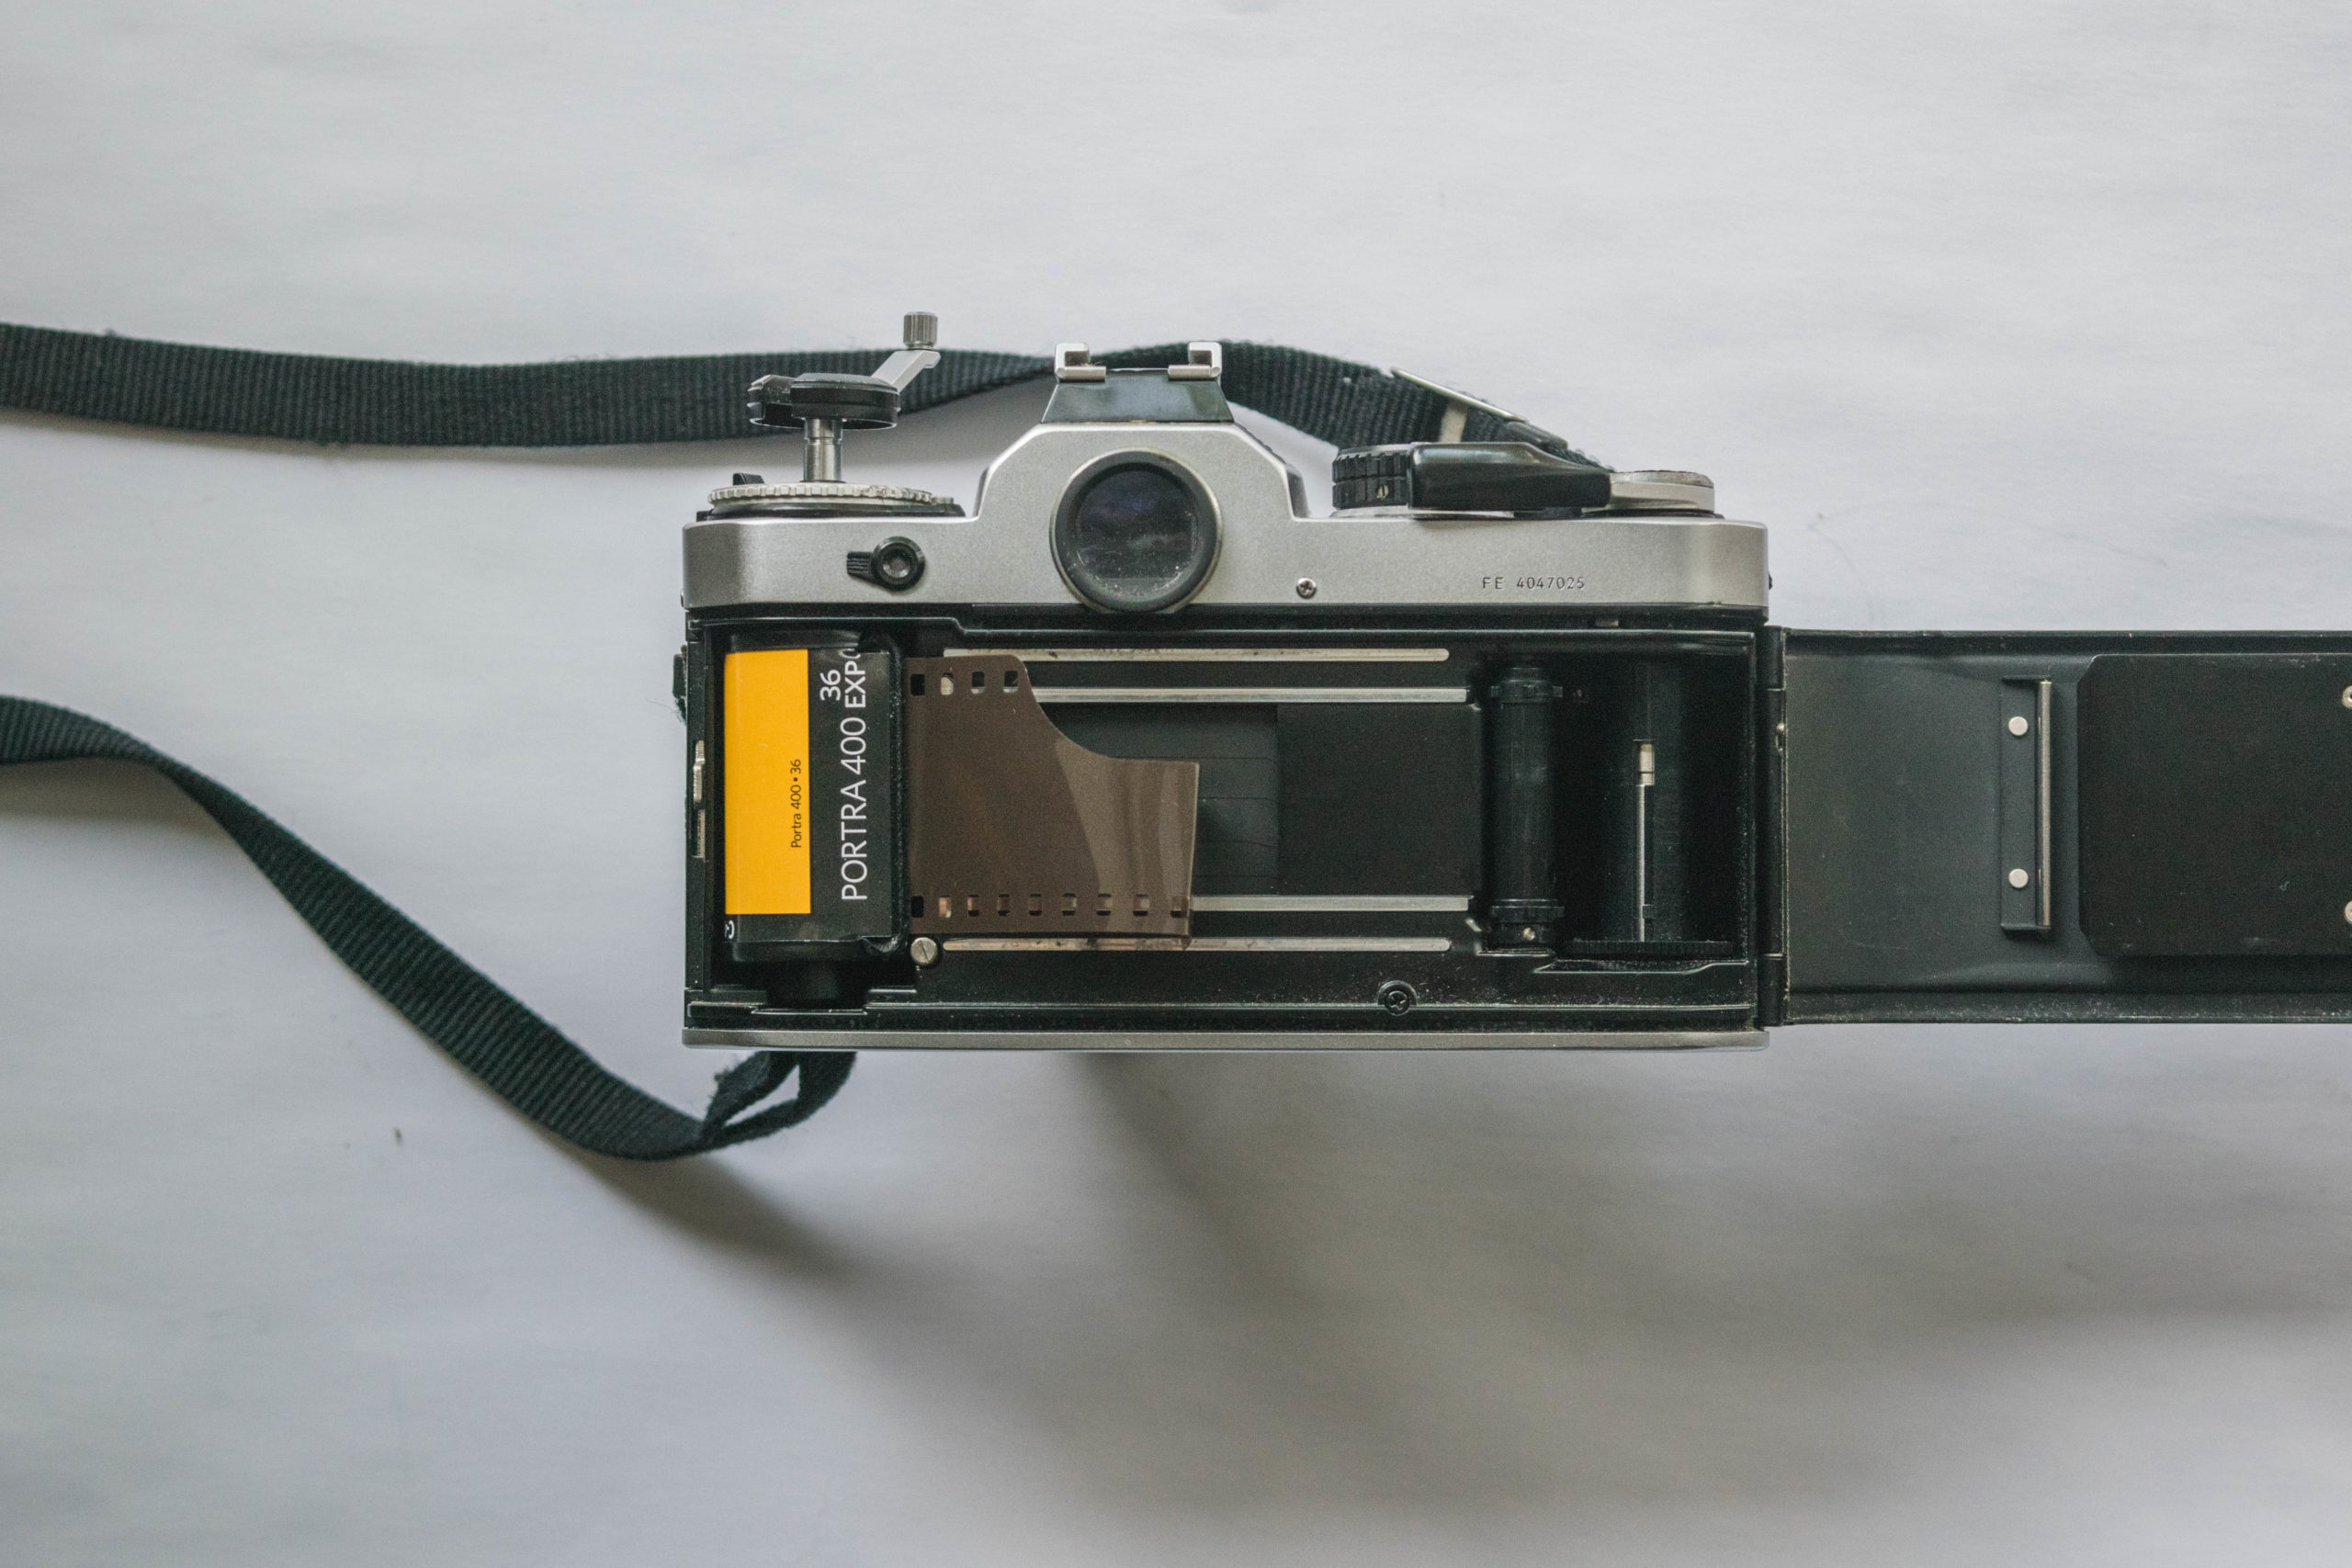 Feed Film - How to Load Film into a 35mm Film Camera - FilterGrade Blog